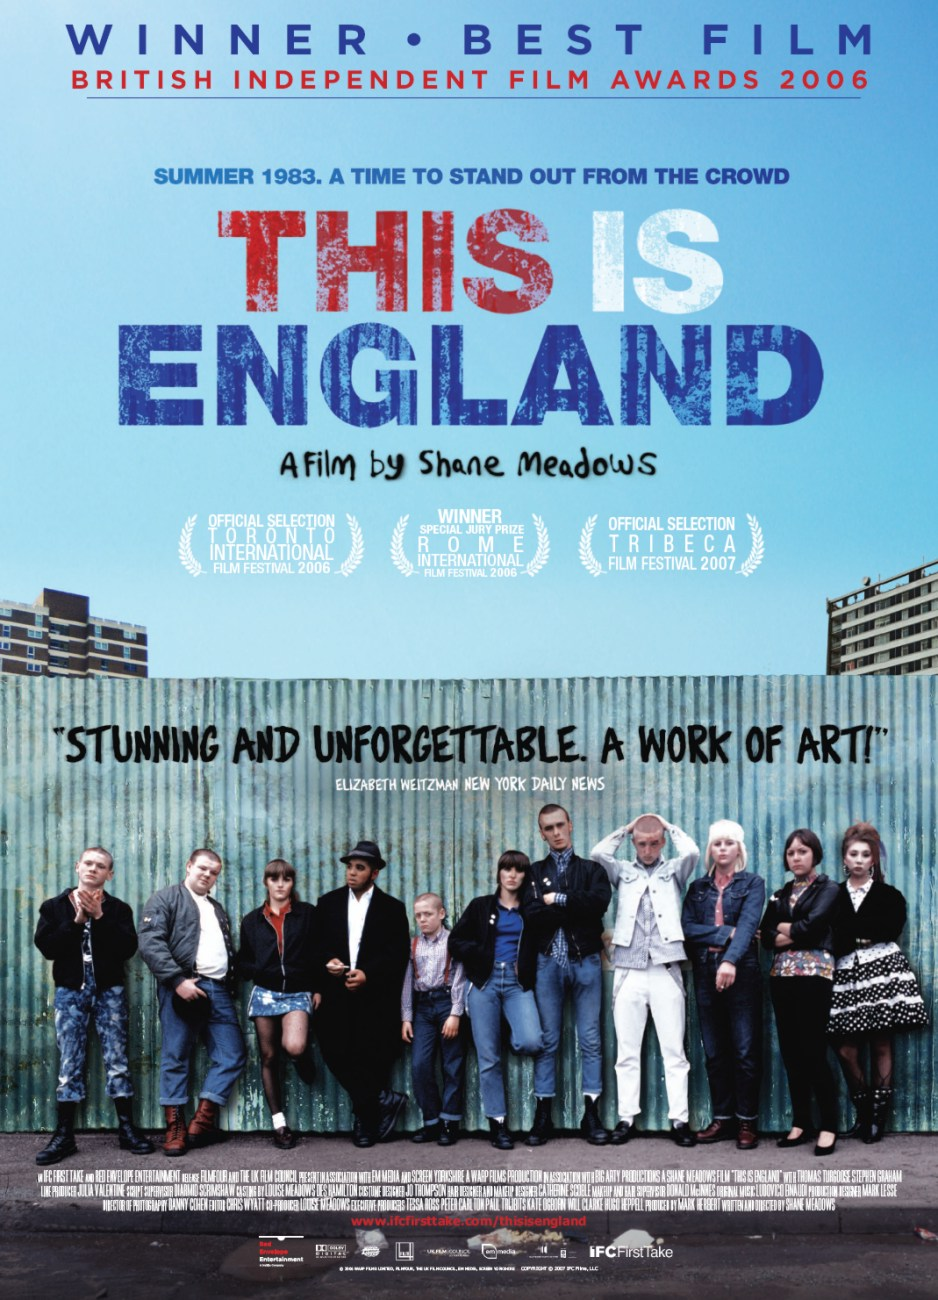 http://dvdsaxxo.files.wordpress.com/2009/10/this_is_england_film_poster.jpg